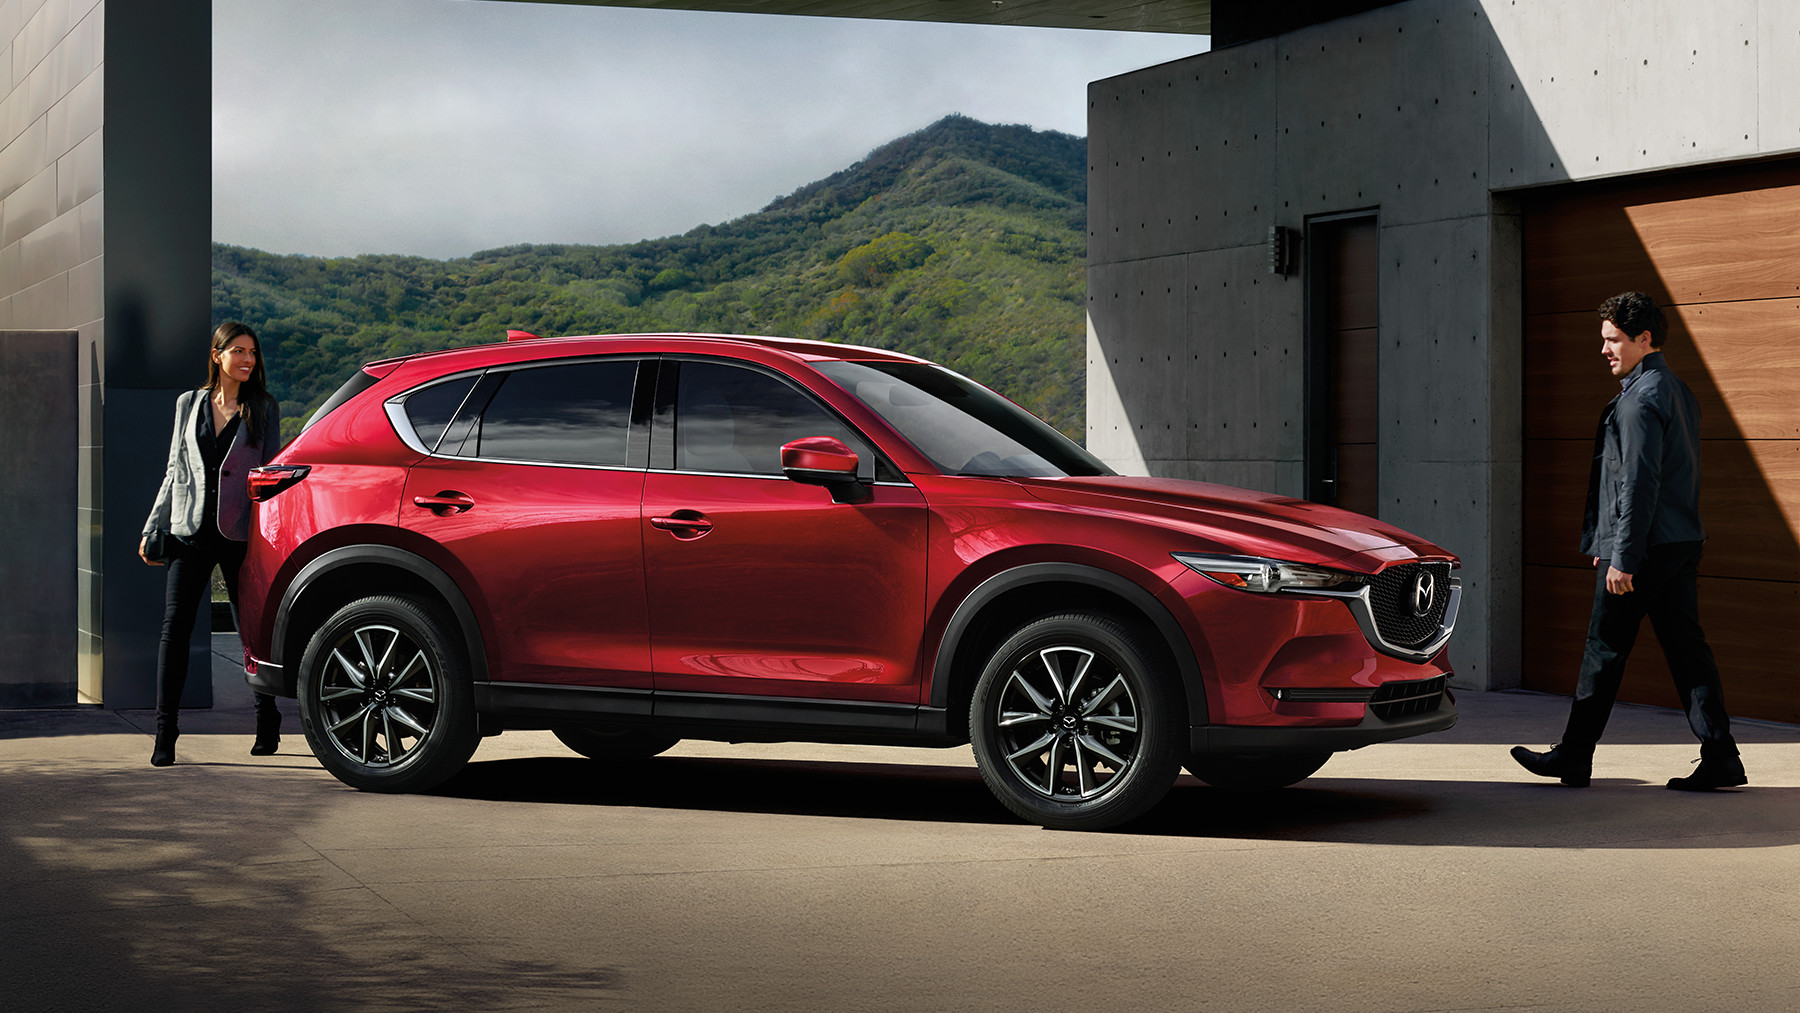 2018 mazda cx 5 release date pictures specs prices features digital trends. Black Bedroom Furniture Sets. Home Design Ideas